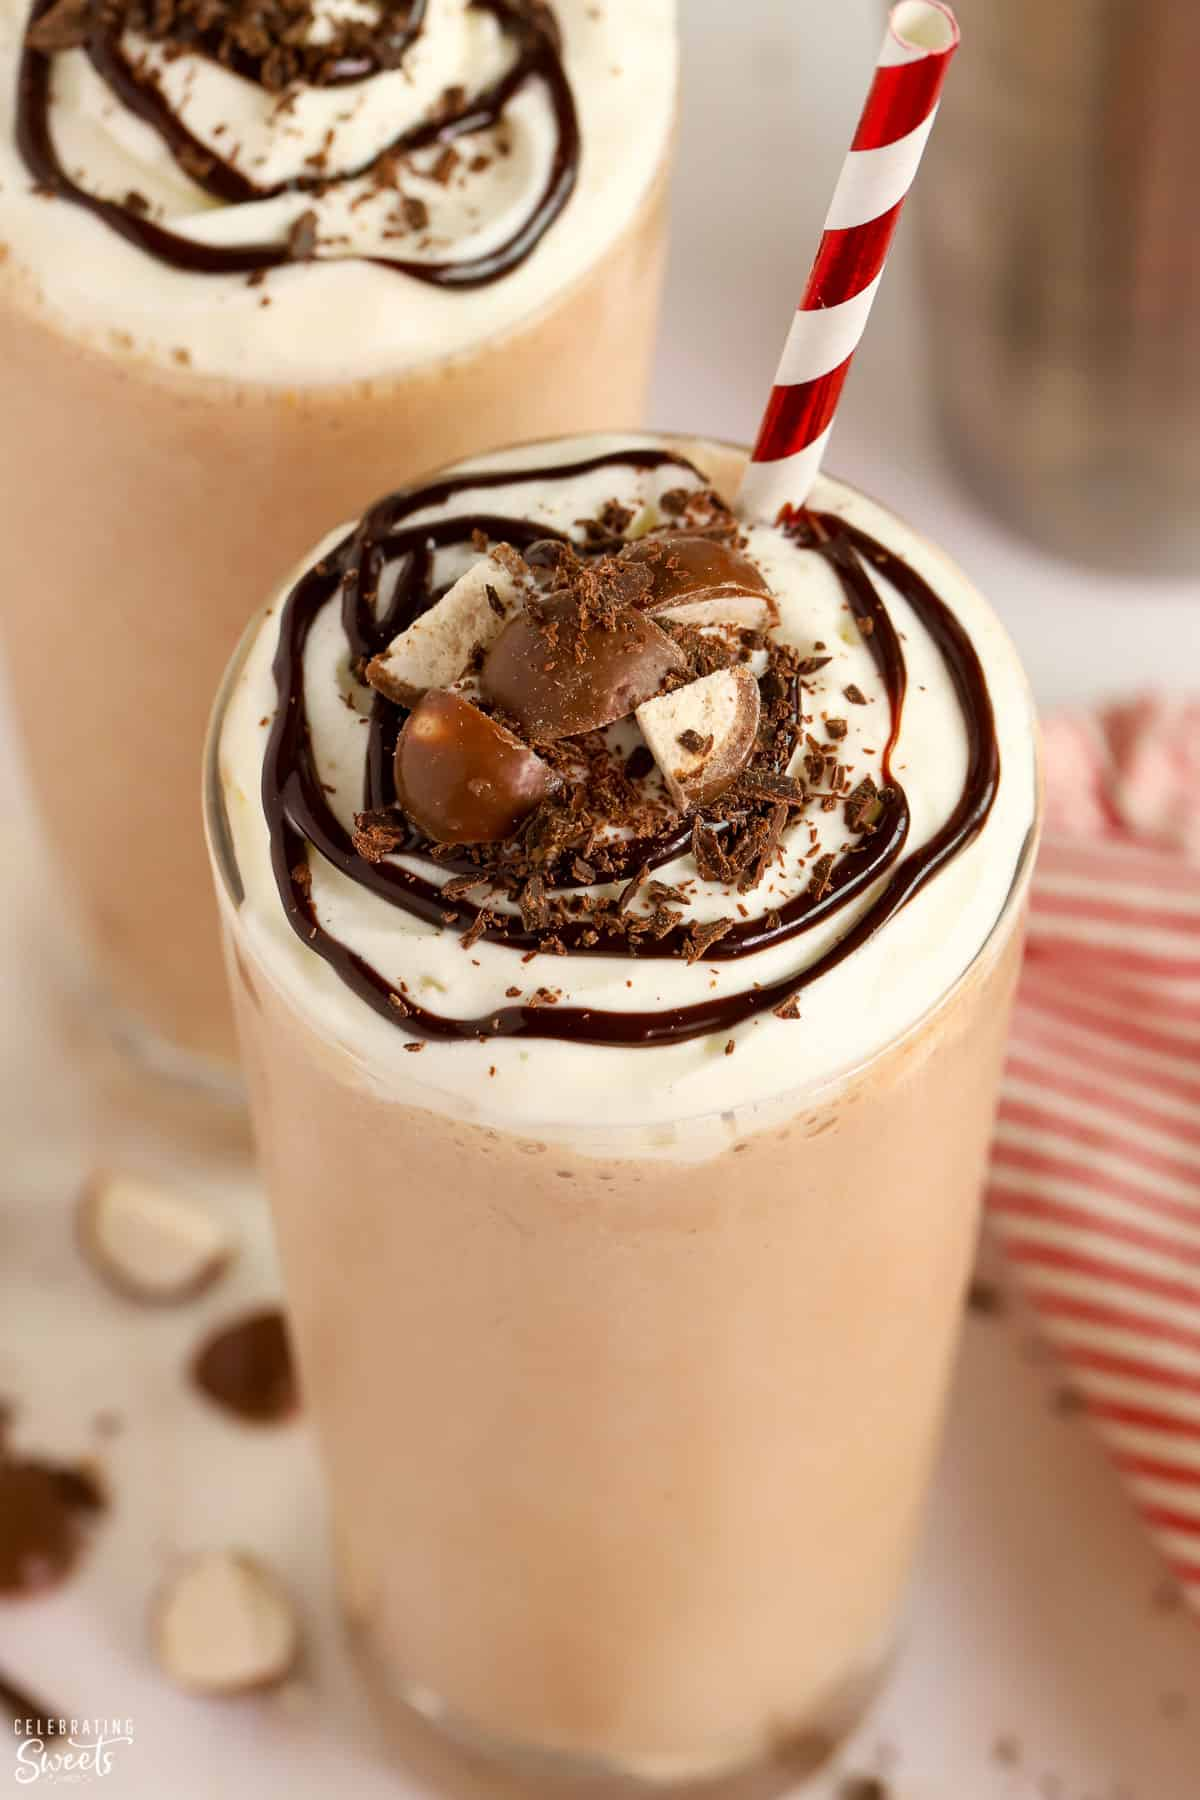 Closeup of chocolate malt topped with whipped cream and chocolate sauce.